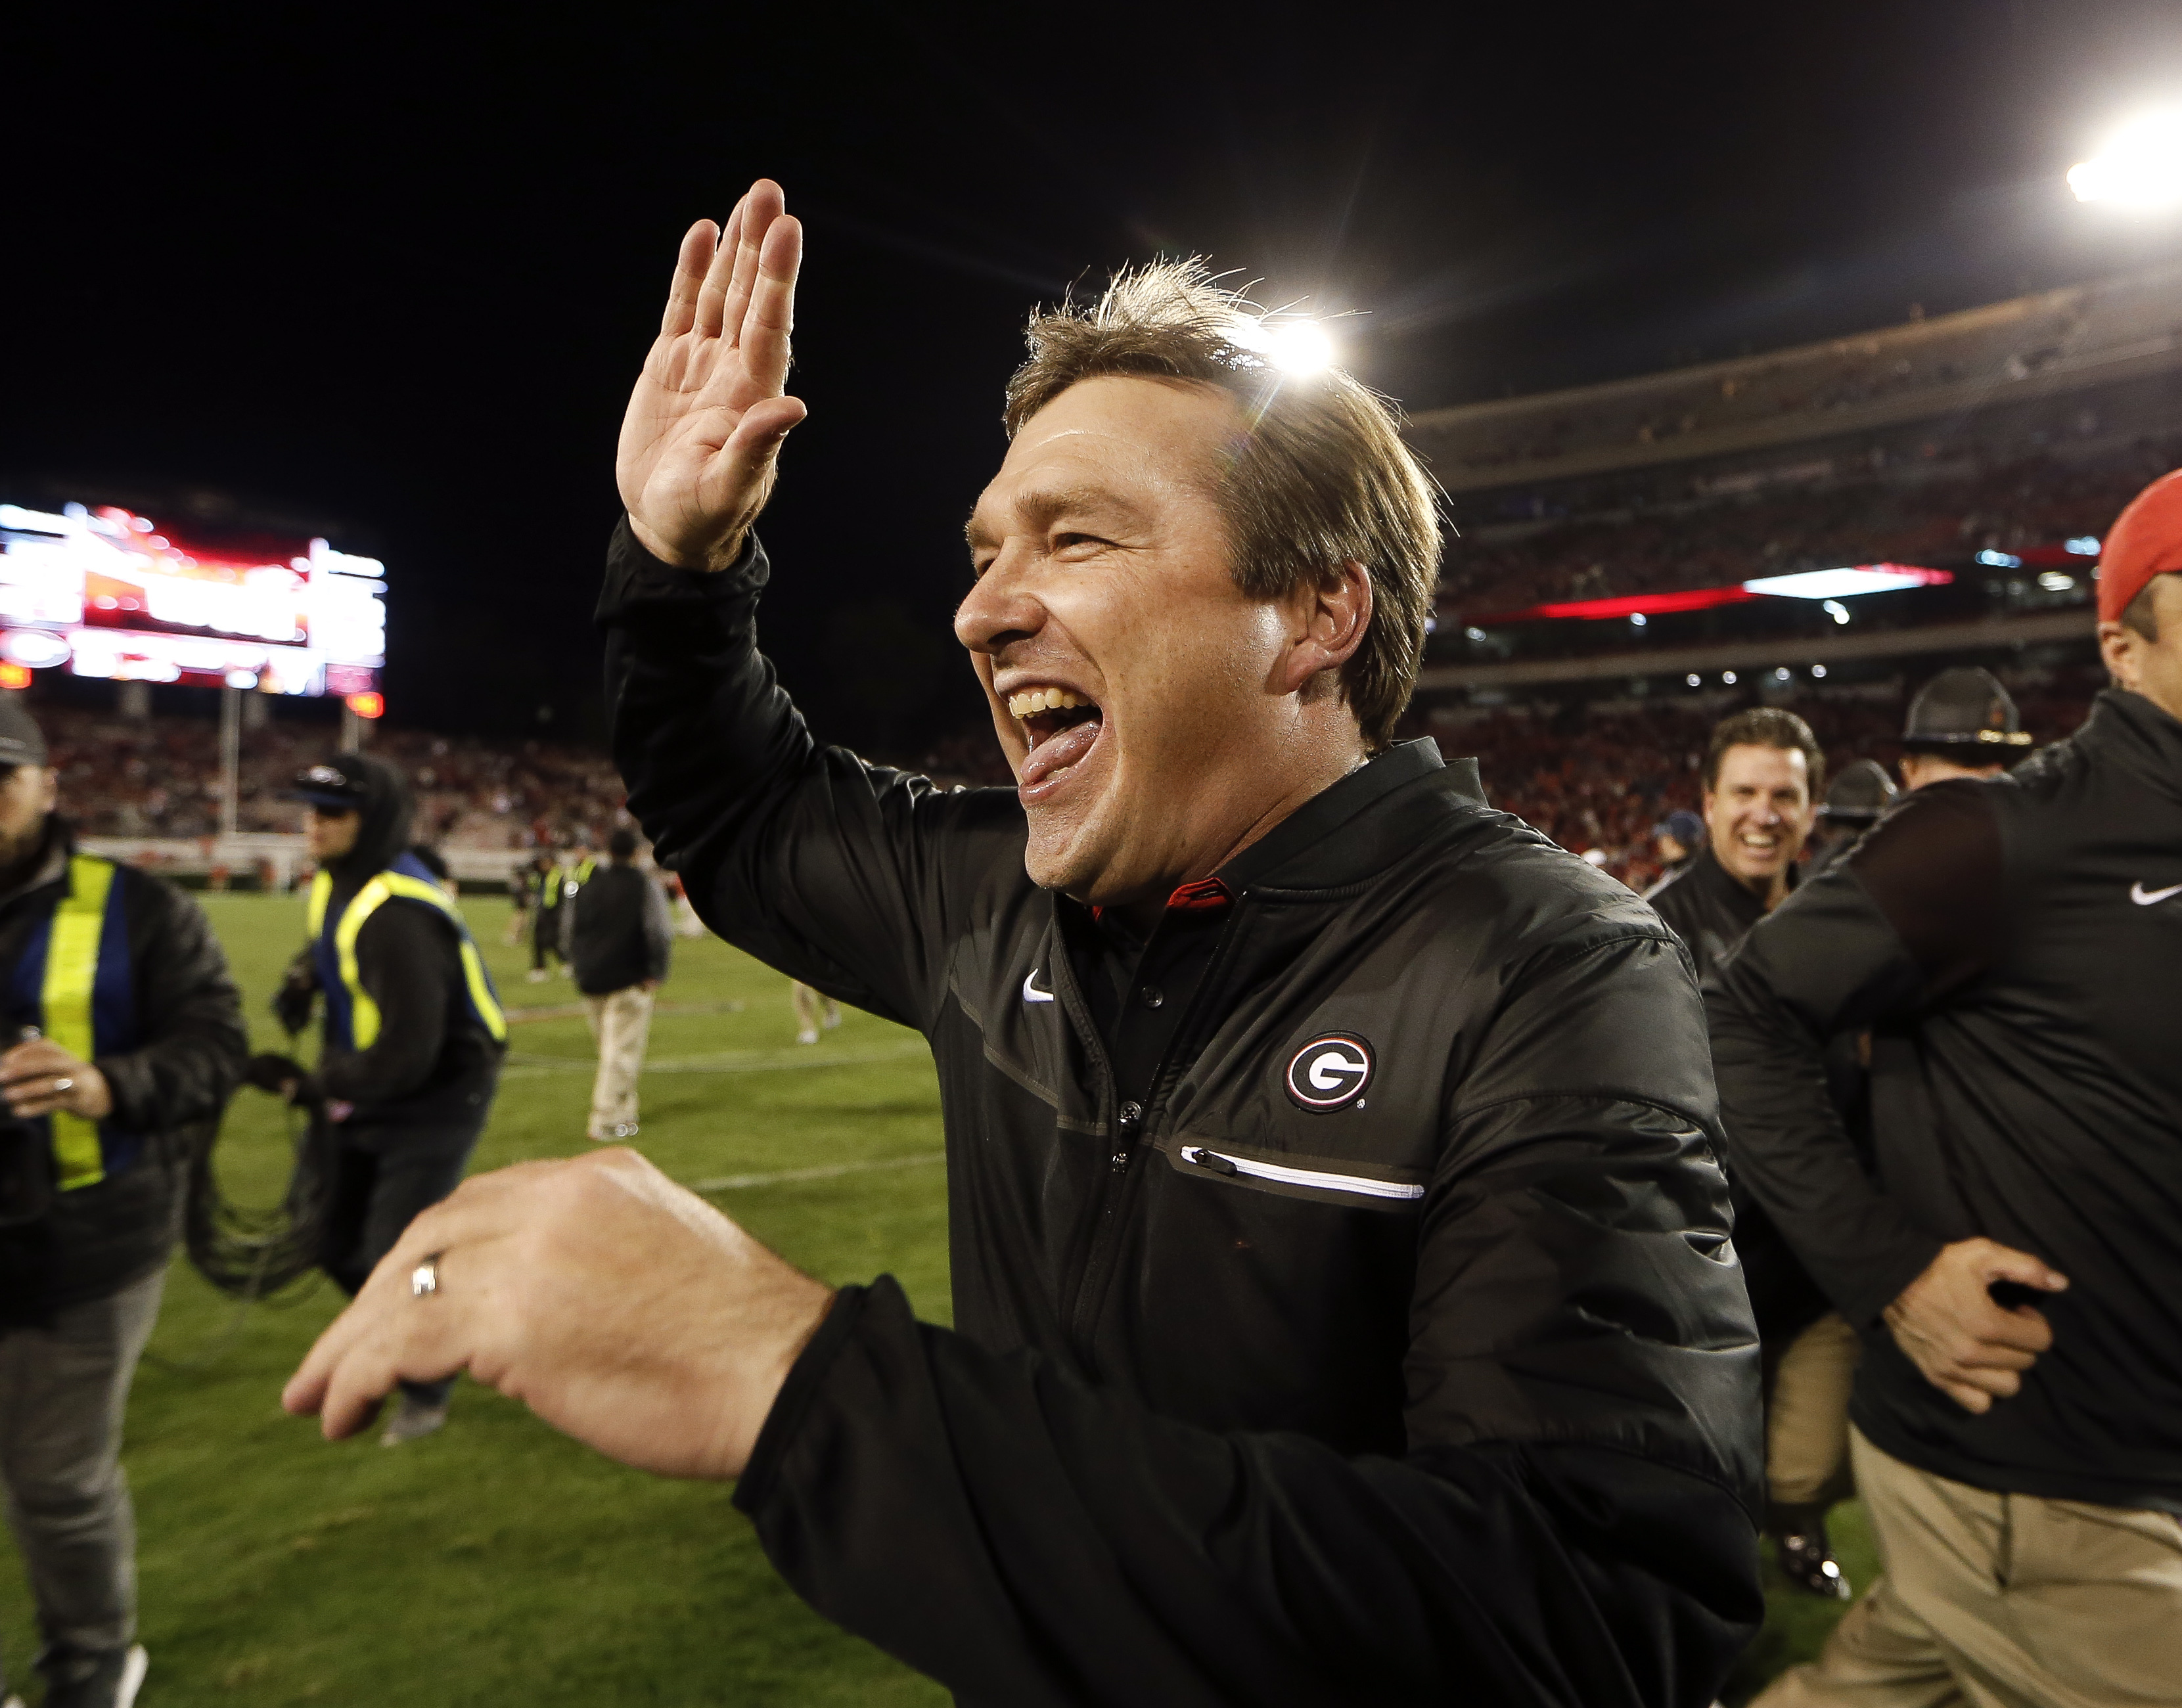 Georgia head coach Kirby Smart reacts as he leaves the field after defeating Auburn 13-7 in an NCAA college football game Saturday, Nov. 12, 2016, in Athens, Ga. (AP Photo/John Bazemore)